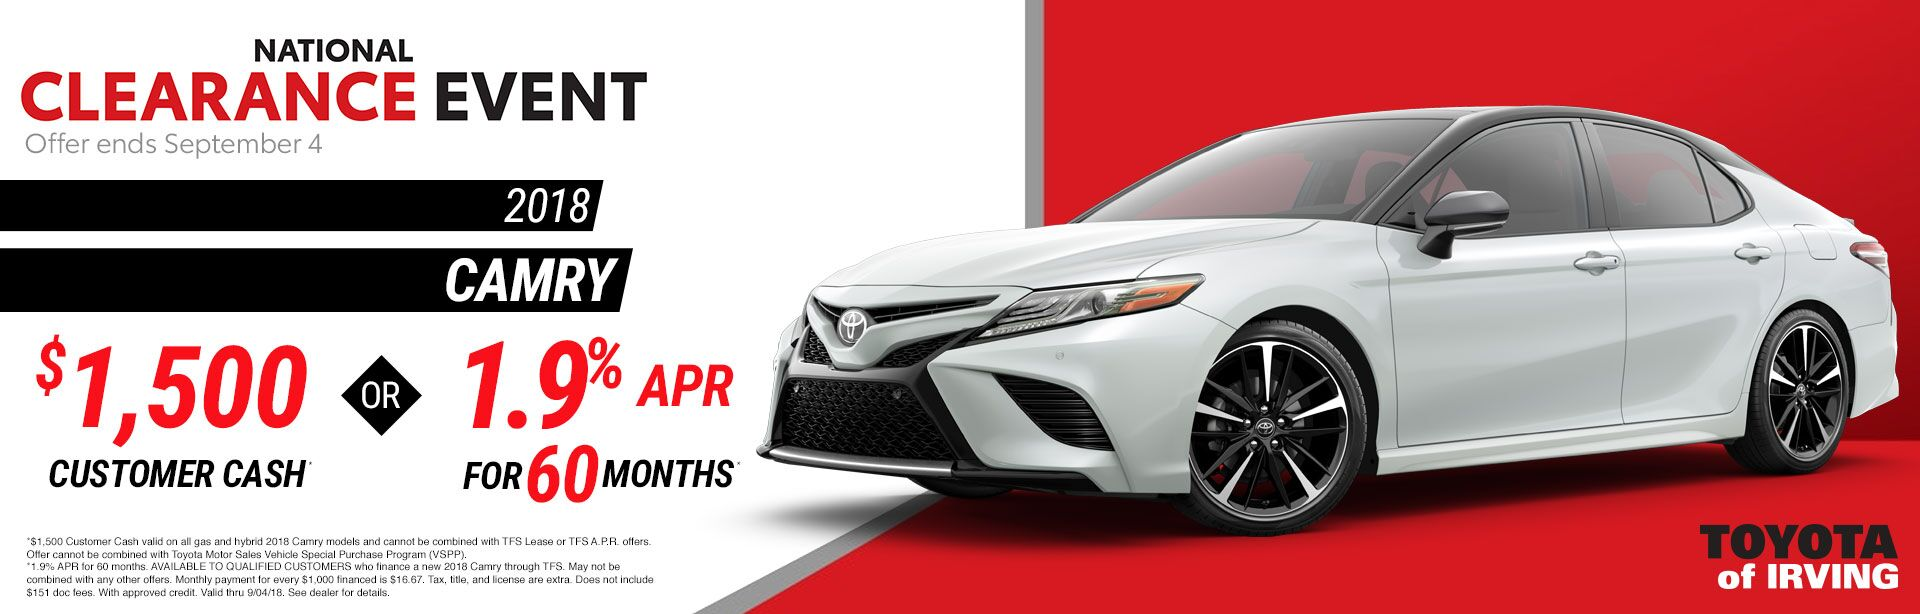 Camry August 2018